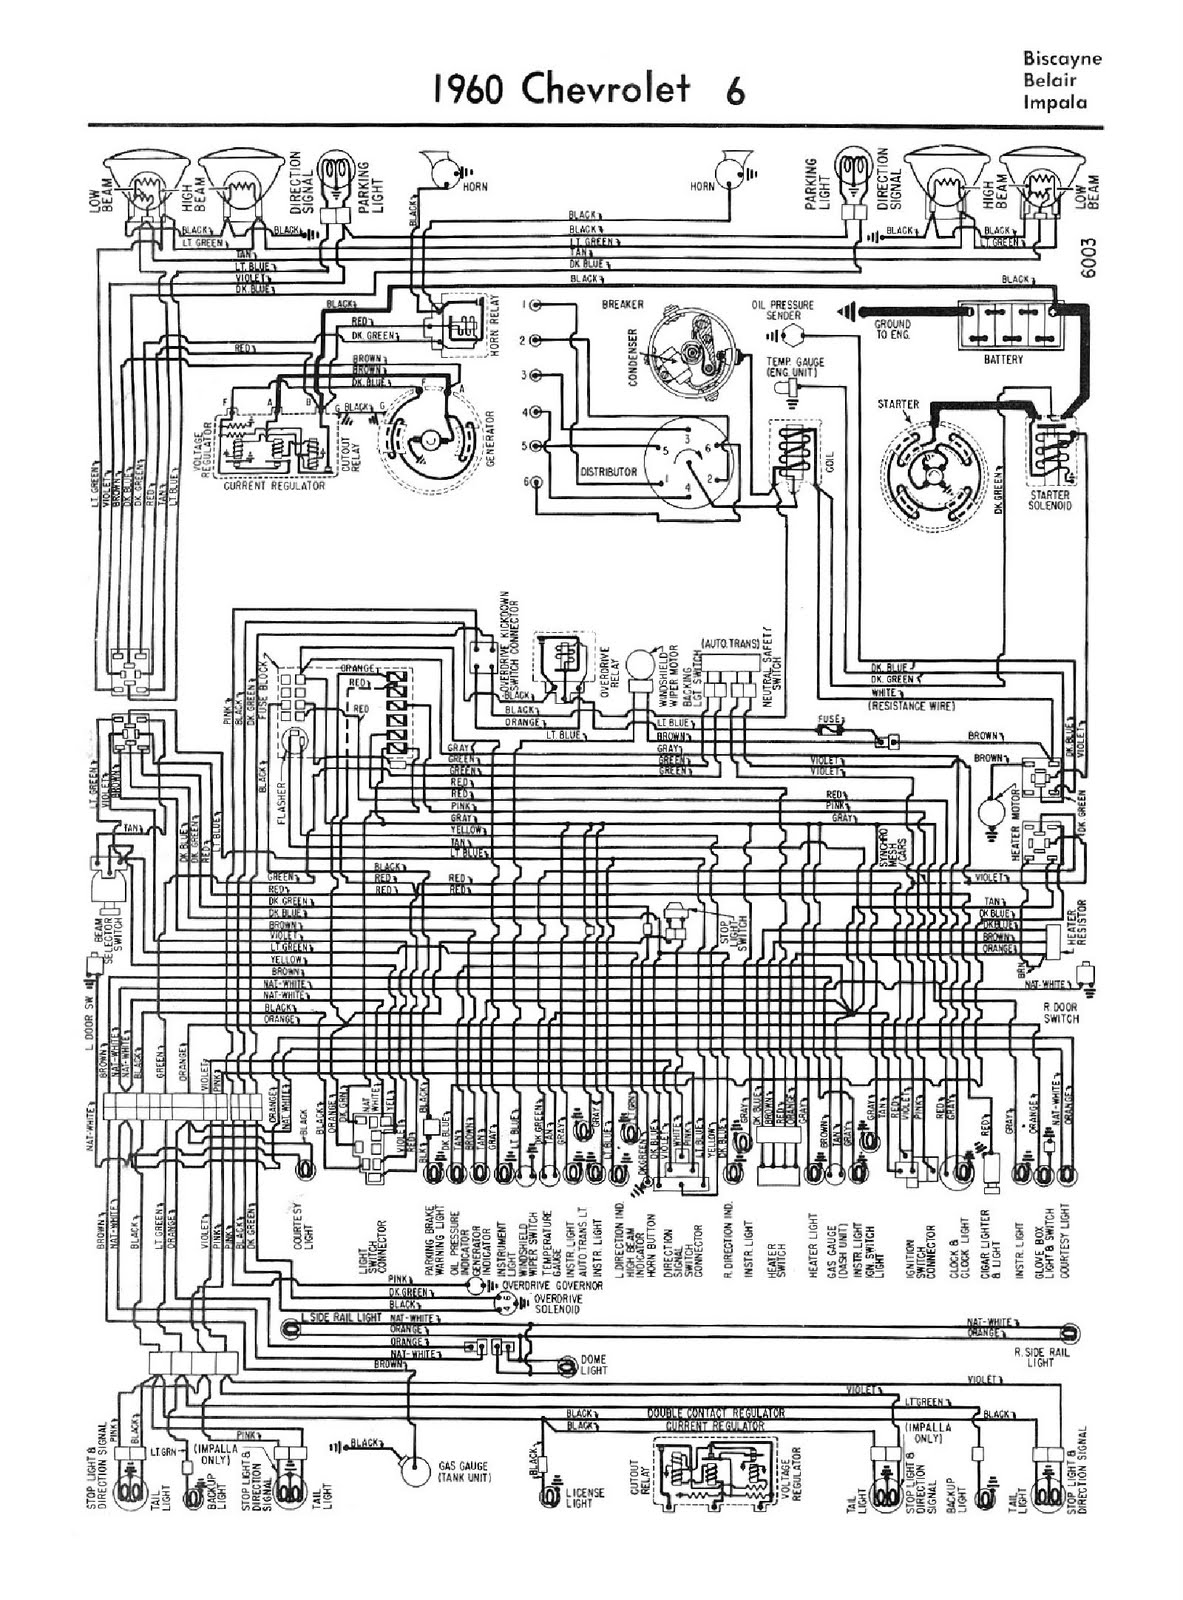 wiring diagram for impala the wiring diagram wiring diagram for 1965 impala wiring wiring diagrams for wiring diagram